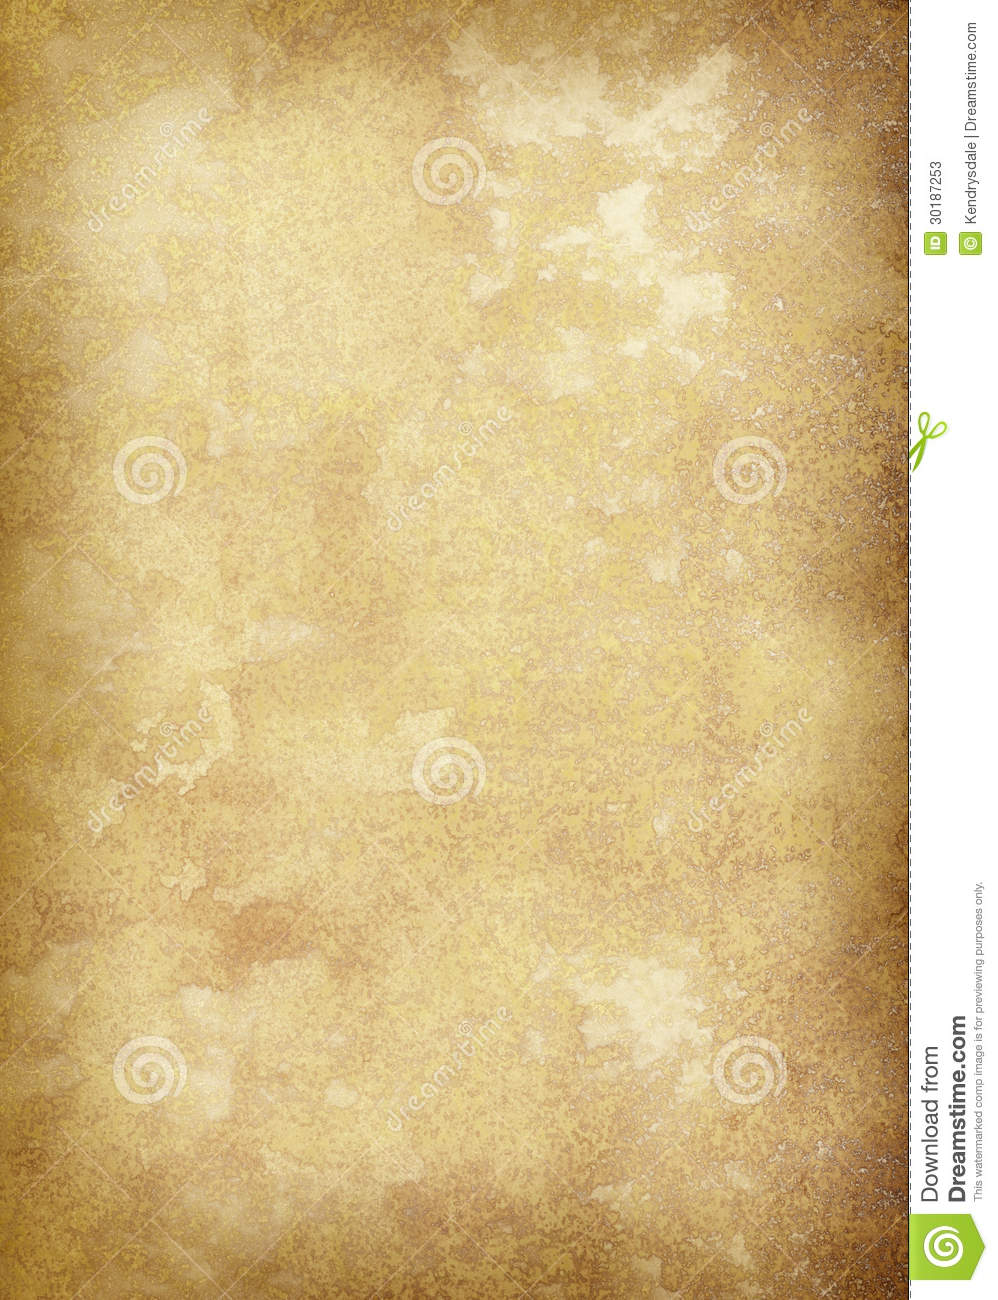 Very large real old vellum page with complex grain and texture. Ideal ... Vintage Border Vector